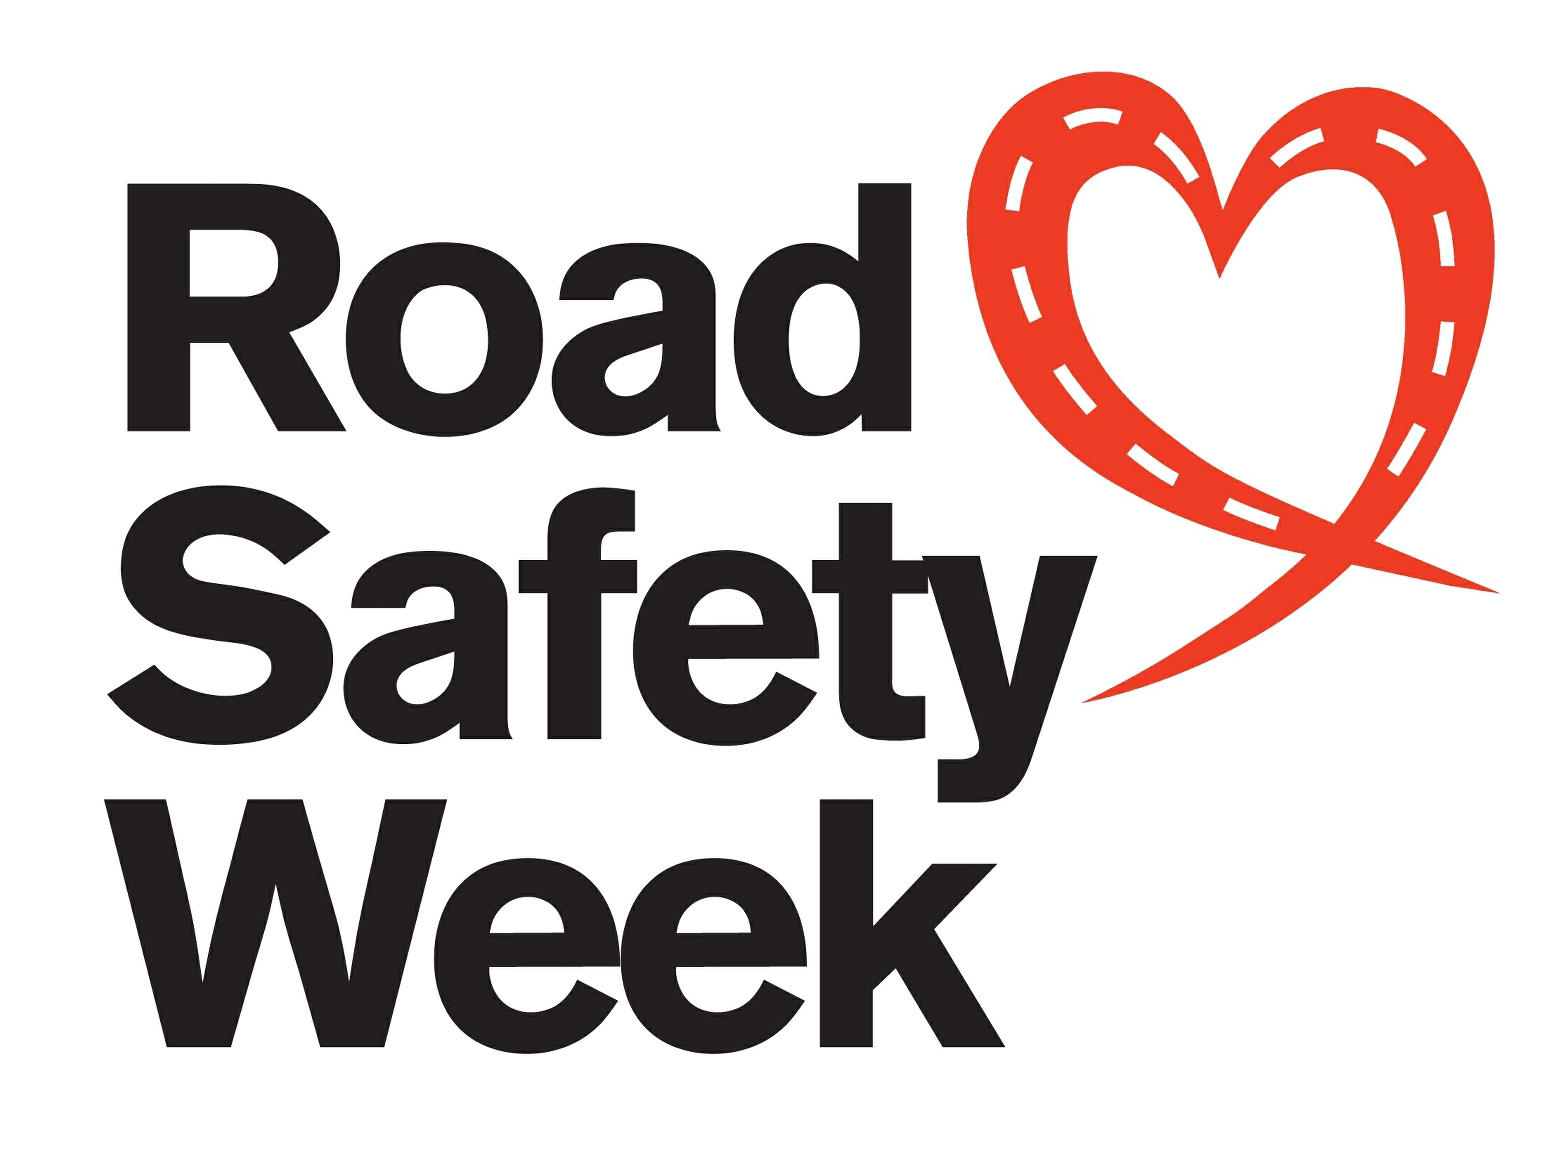 RESOURCES: ROAD SAFETY WEEK 2019